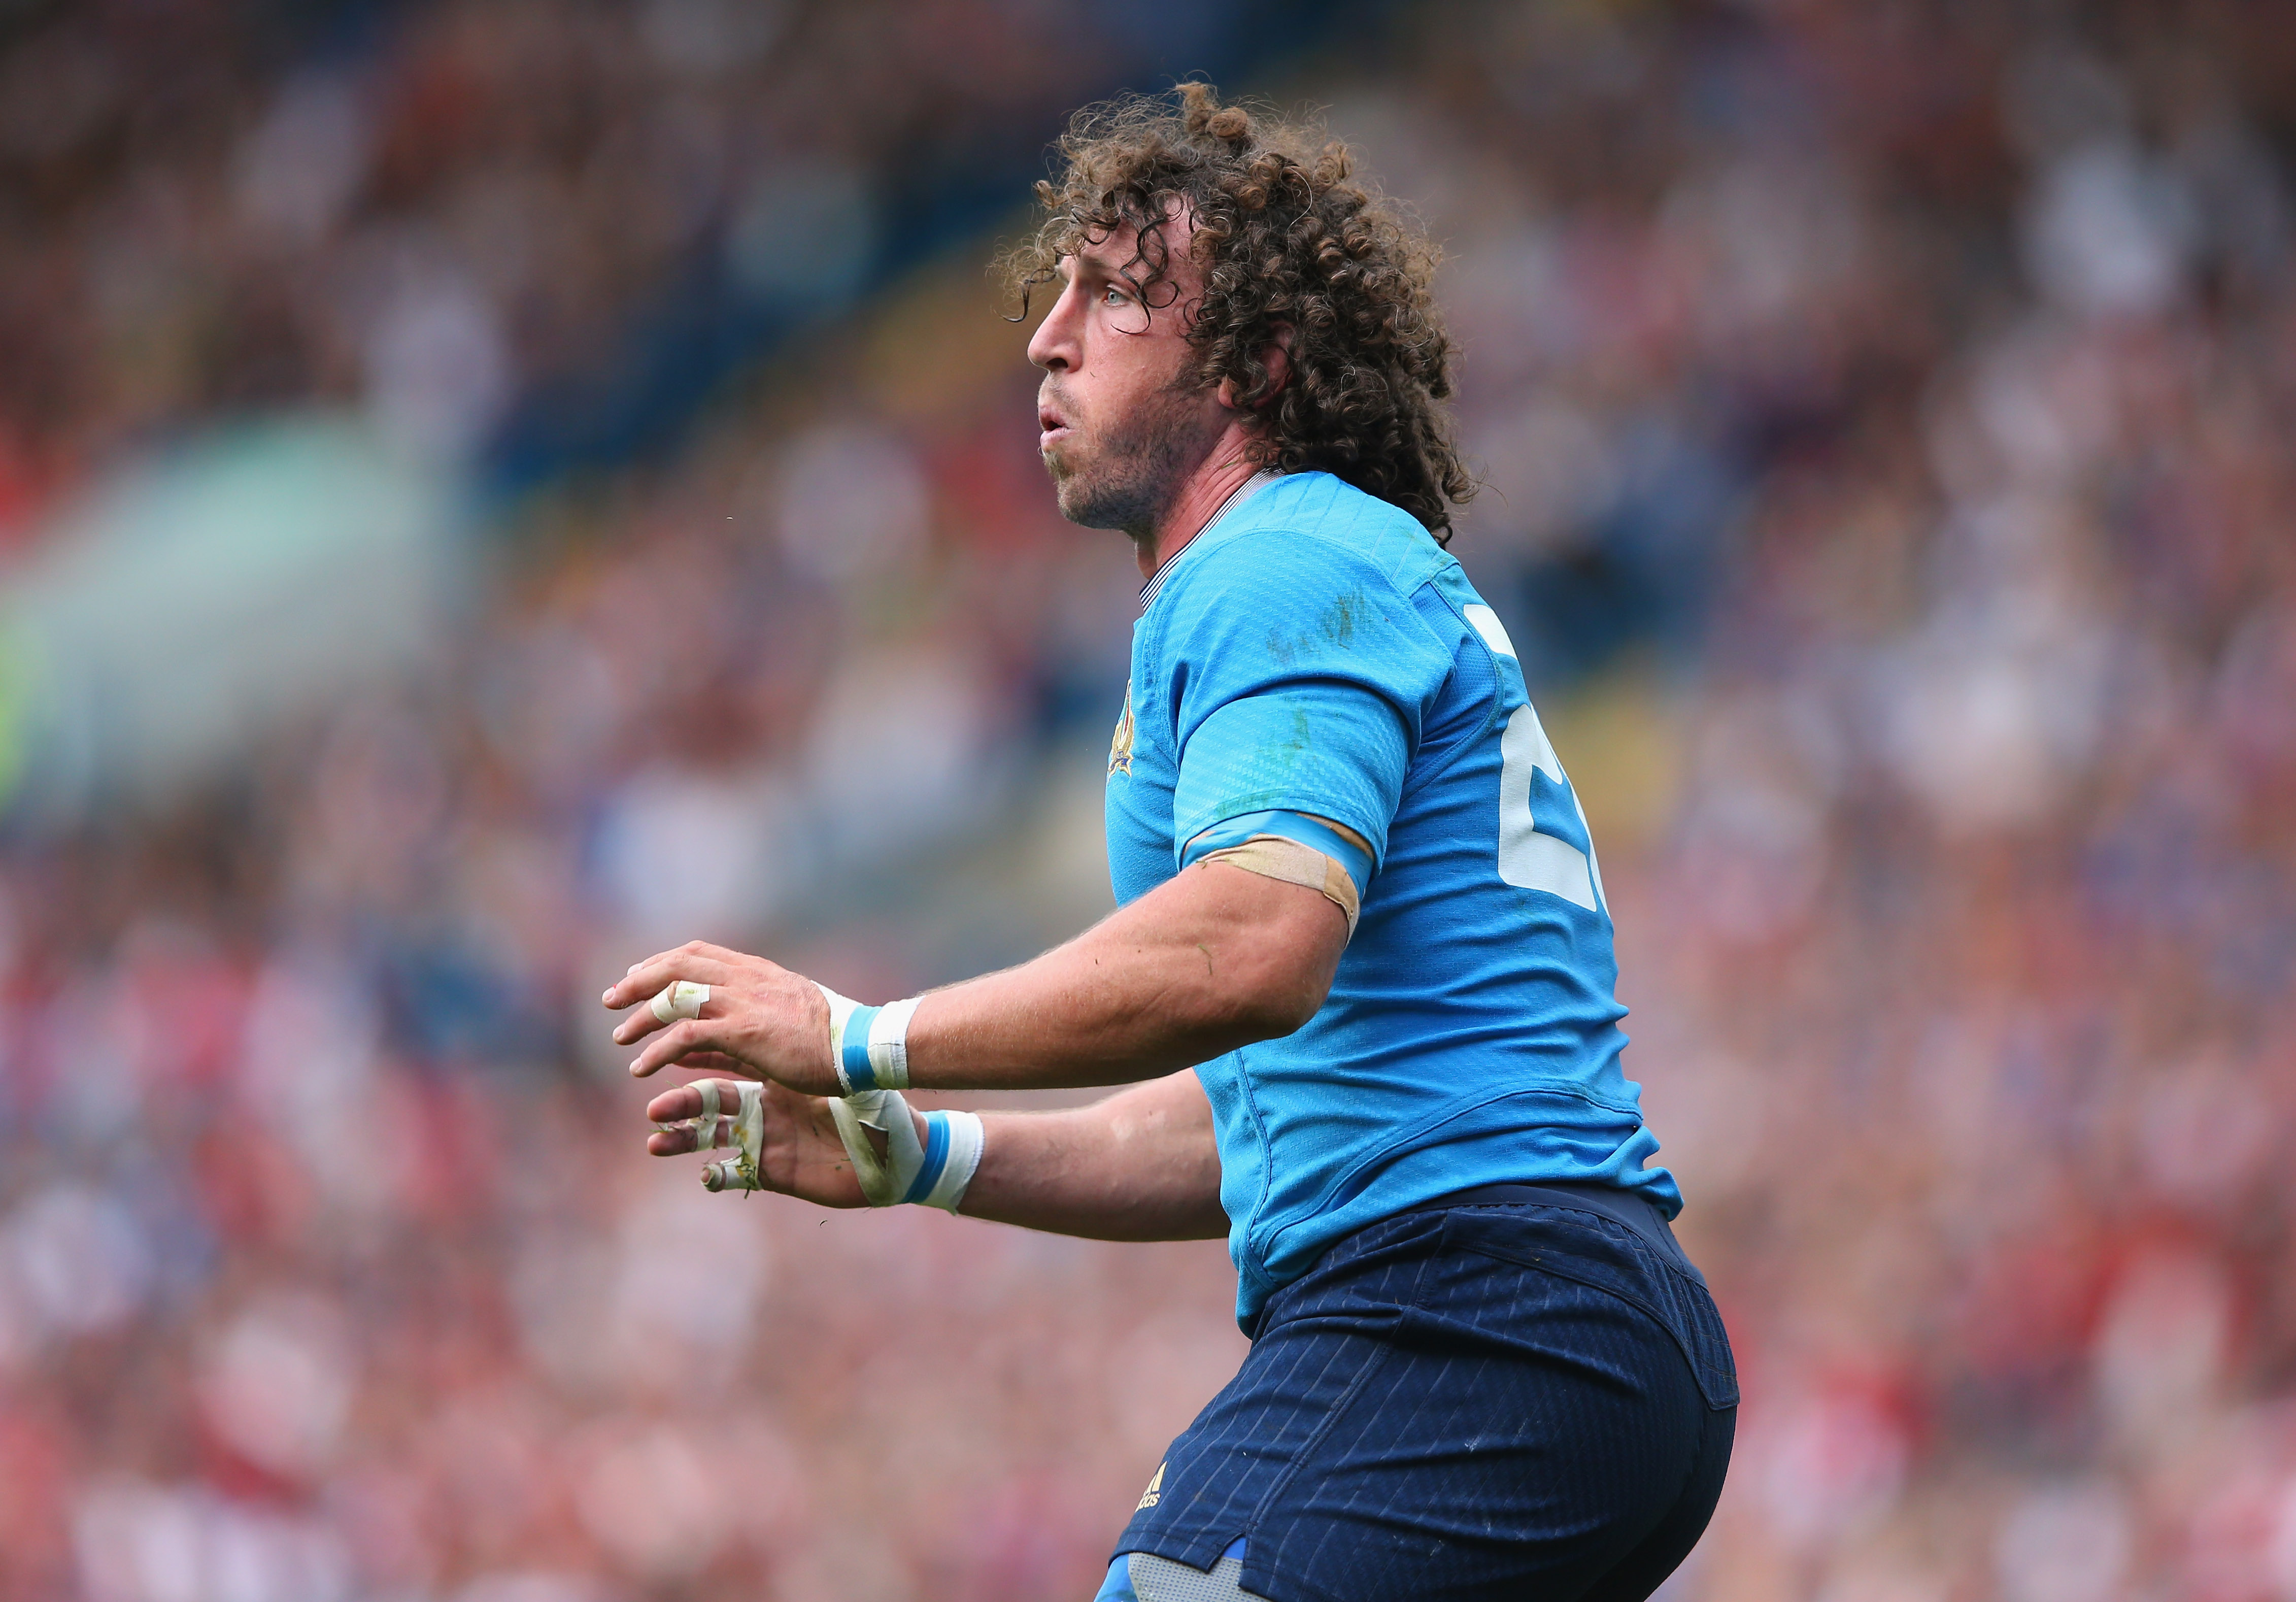 LEEDS, ENGLAND - SEPTEMBER 26:  Mauro Bergamasco of Italy looks on during the 2015 Rugby World Cup Pool D match between Italy and Canada at Elland Road on September 26, 2015 in Leeds, United Kingdom.  (Photo by Alex Livesey/Getty Images)